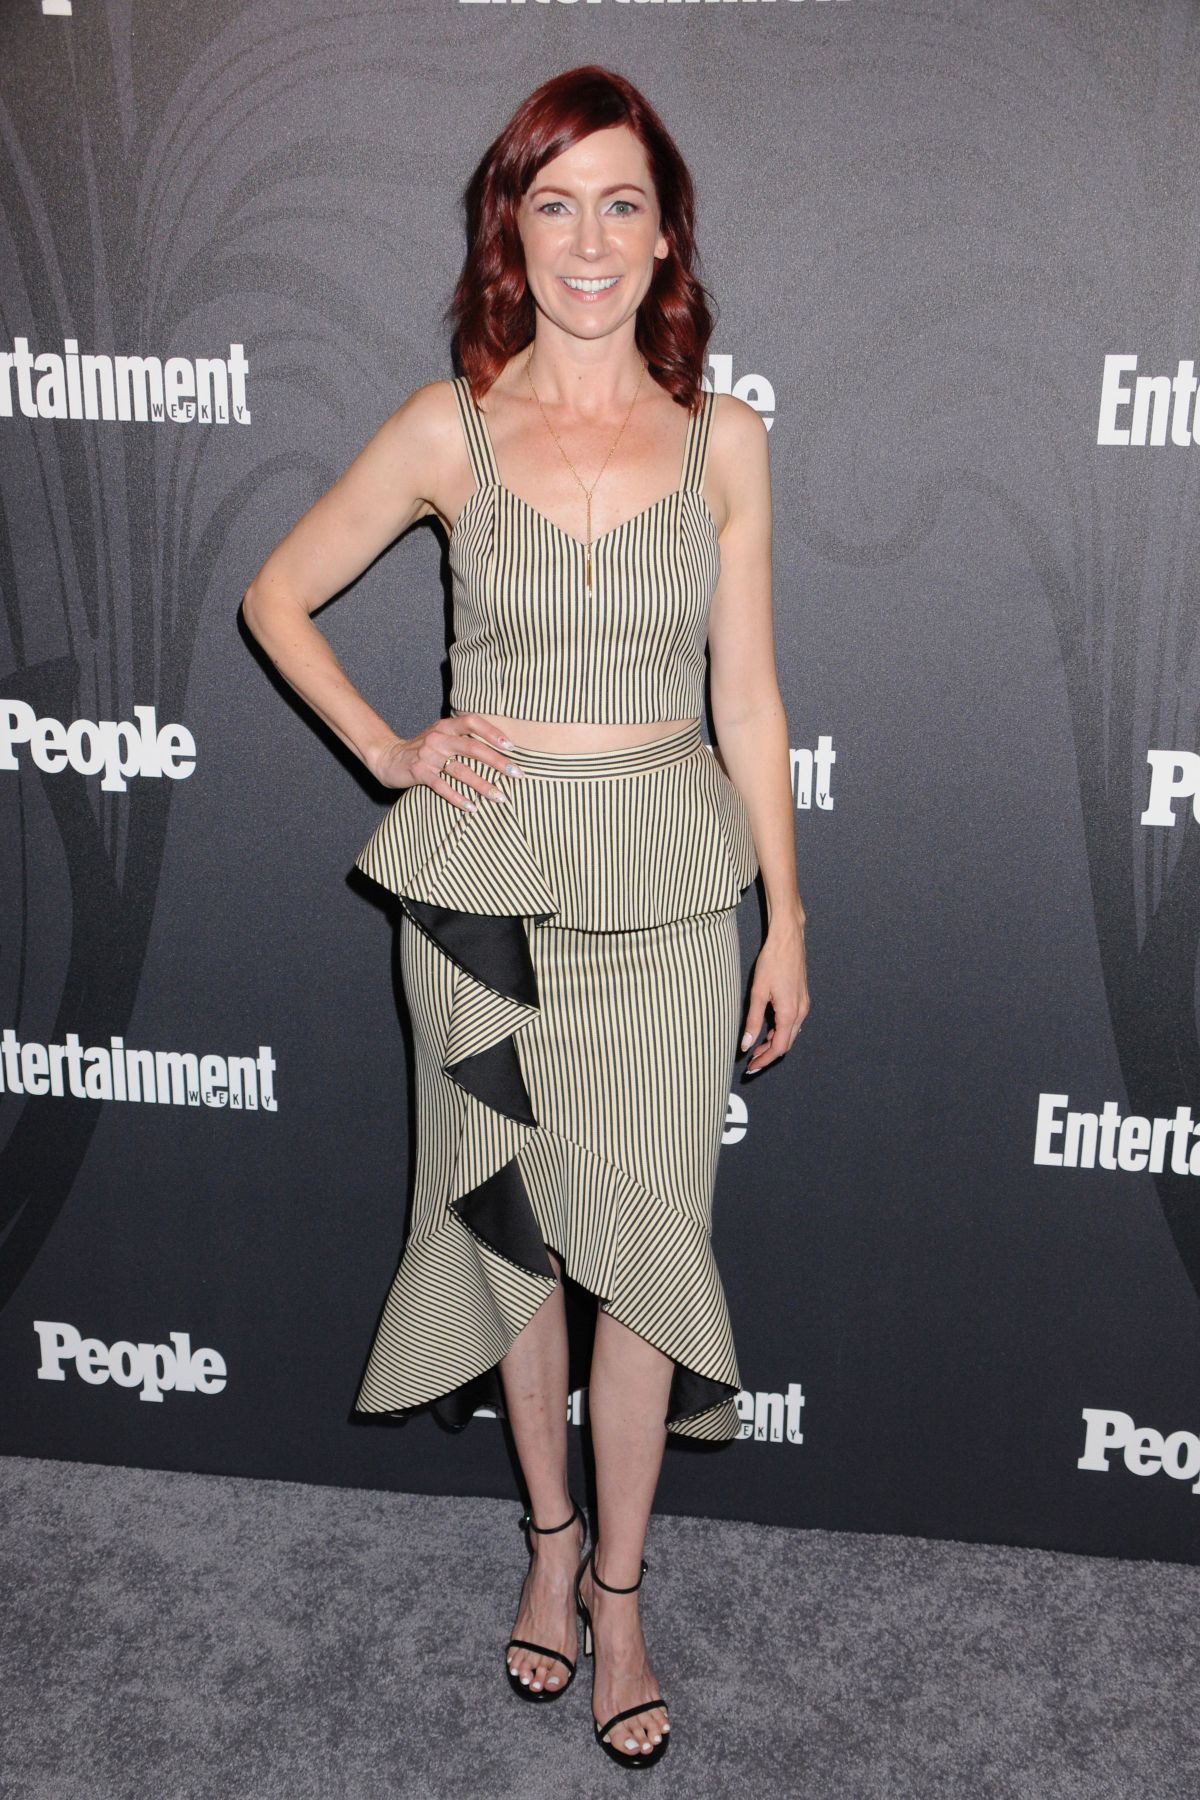 Carrie Preston Carrie Preston new images